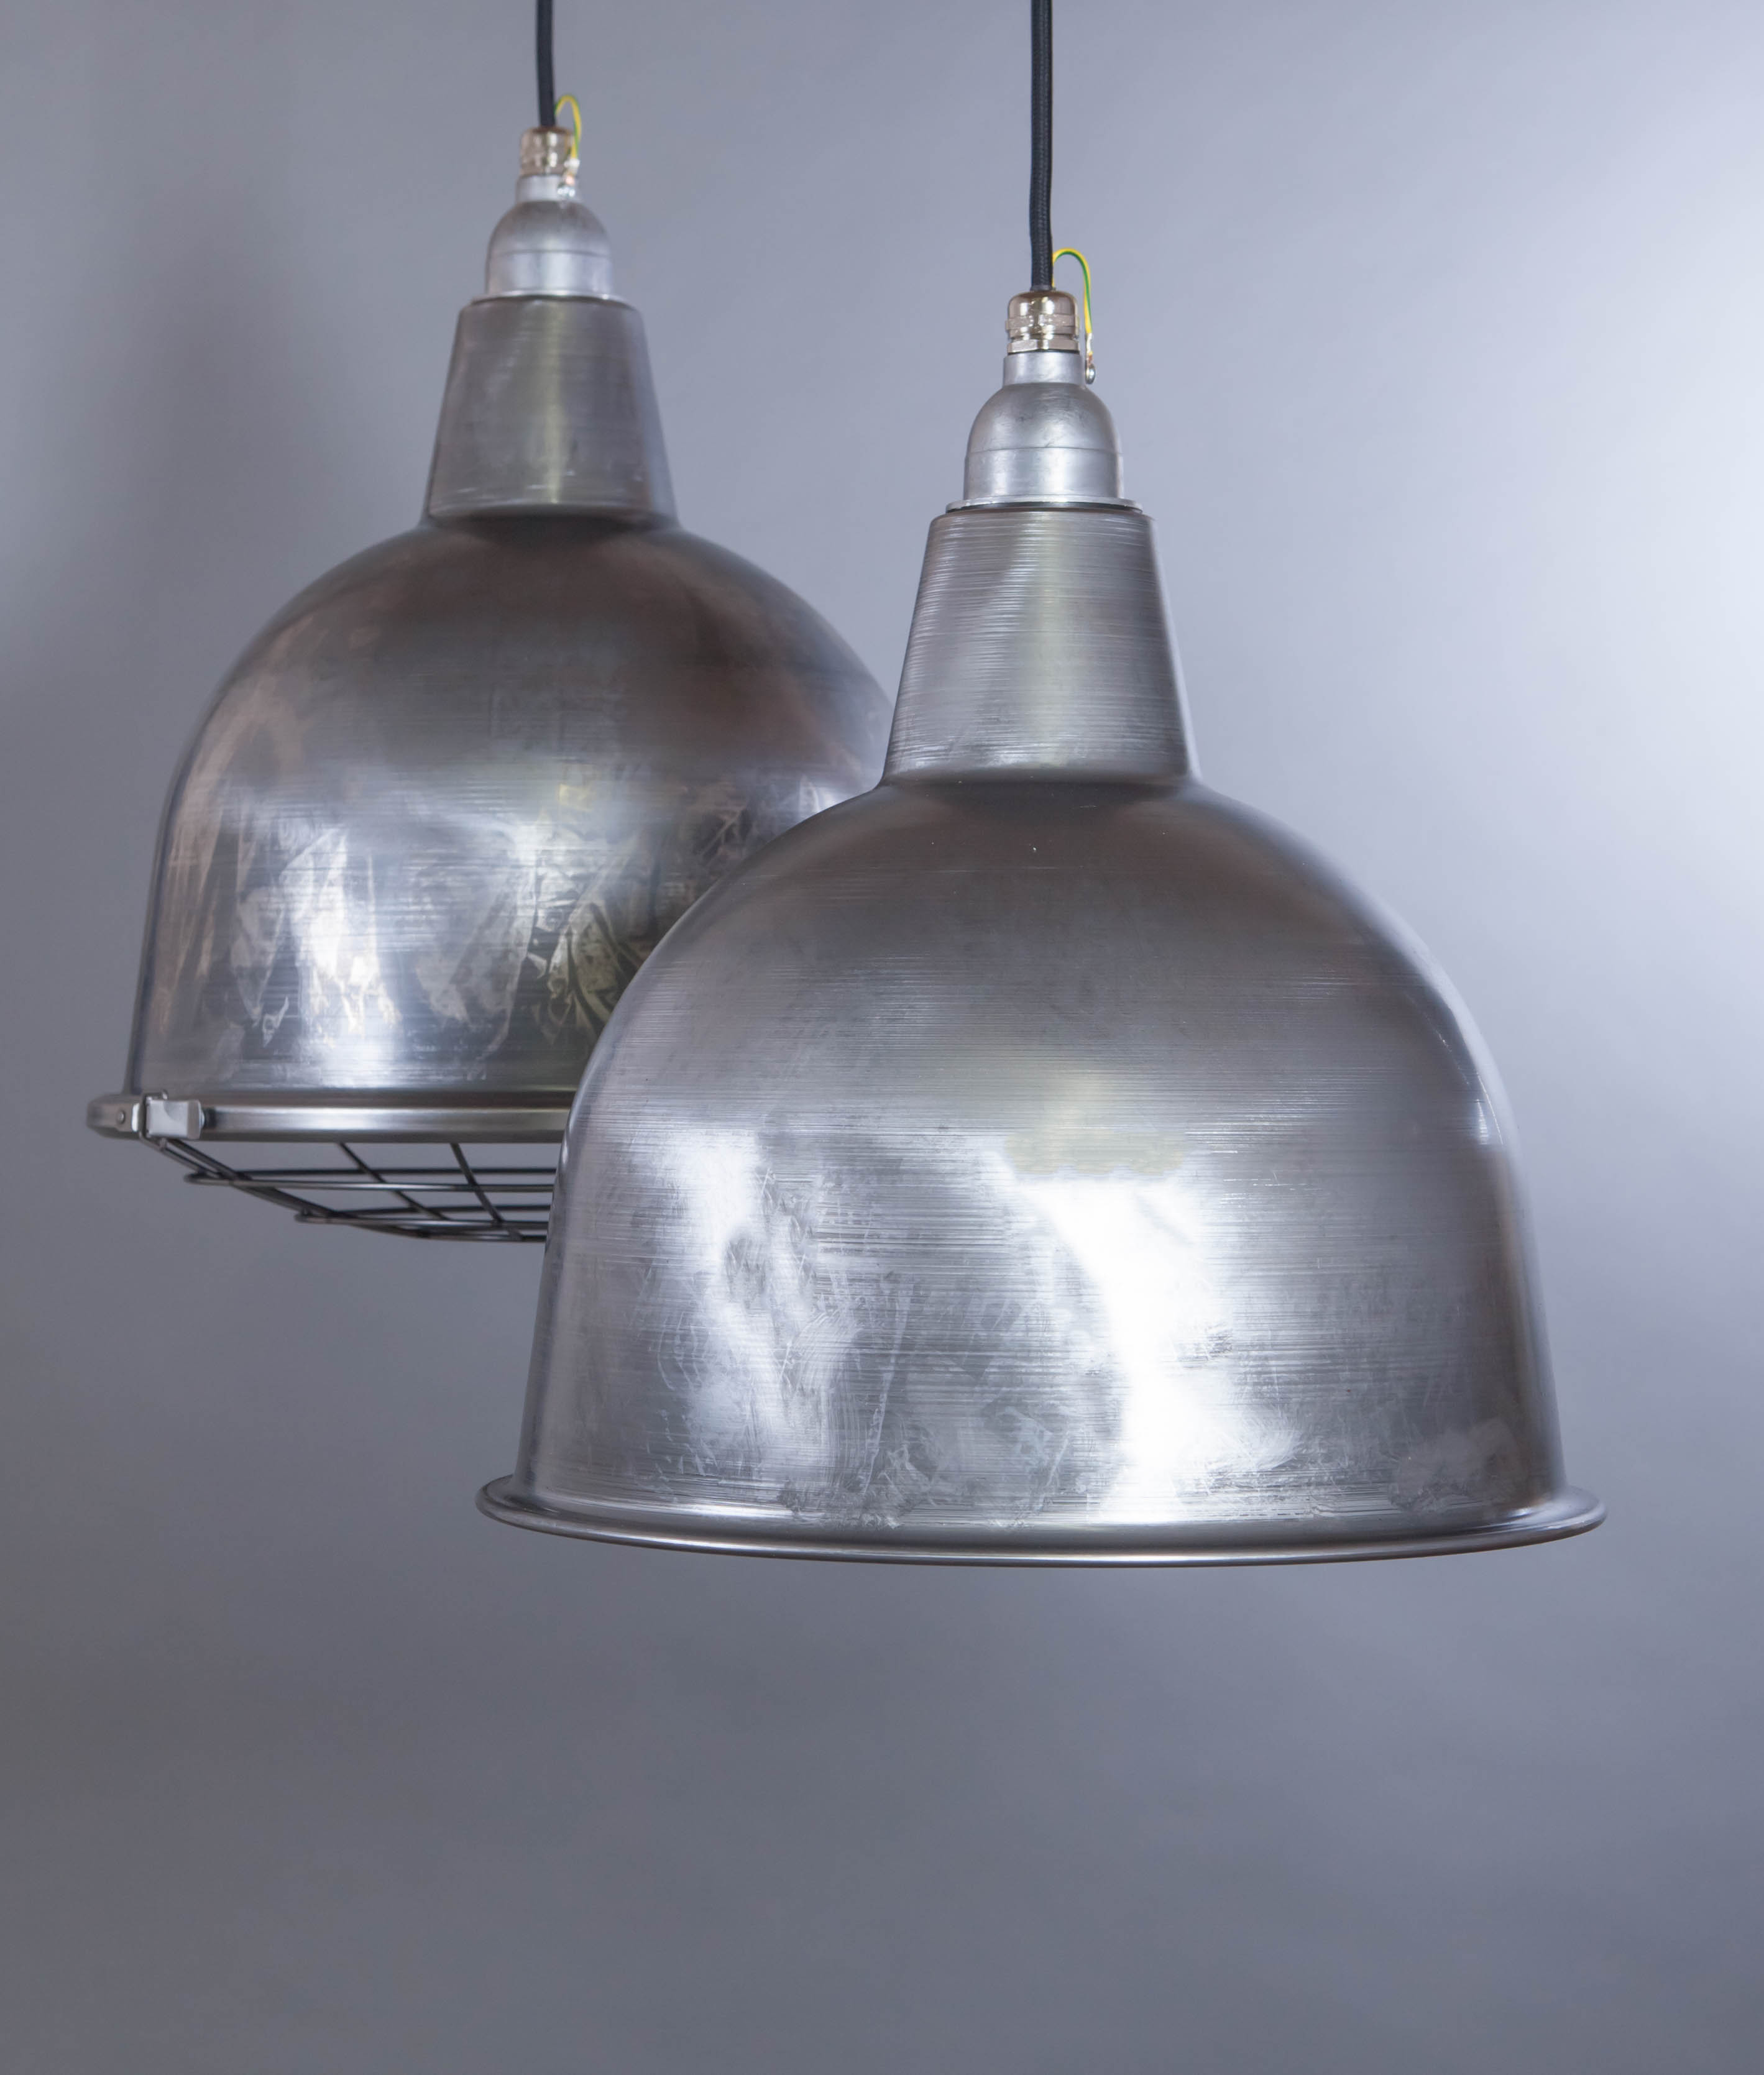 Commercial Kitchen Ceiling Lights: Enamel Factory-Style Kitchen Heat Lamp